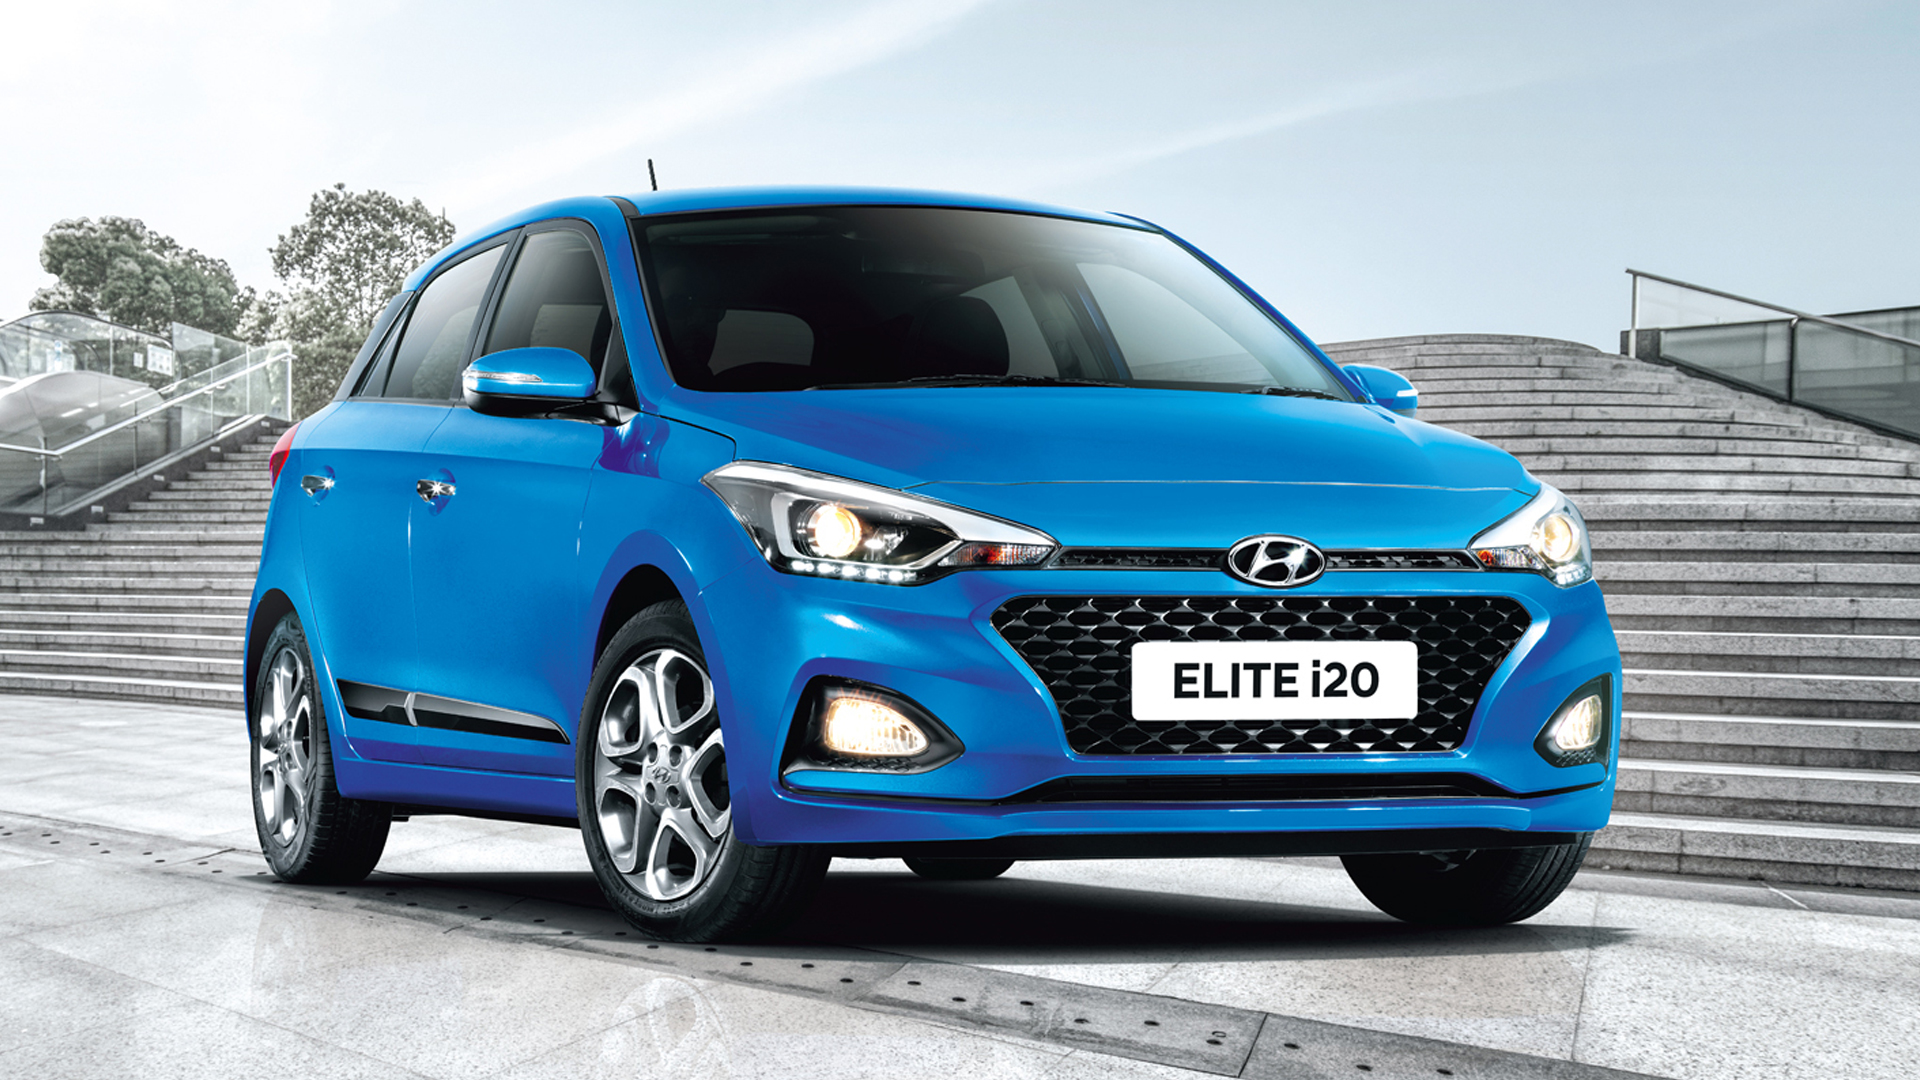 Hyundai Elite i20 2018 - Price, Mileage, Reviews, Specification, Gallery -  Overdrive